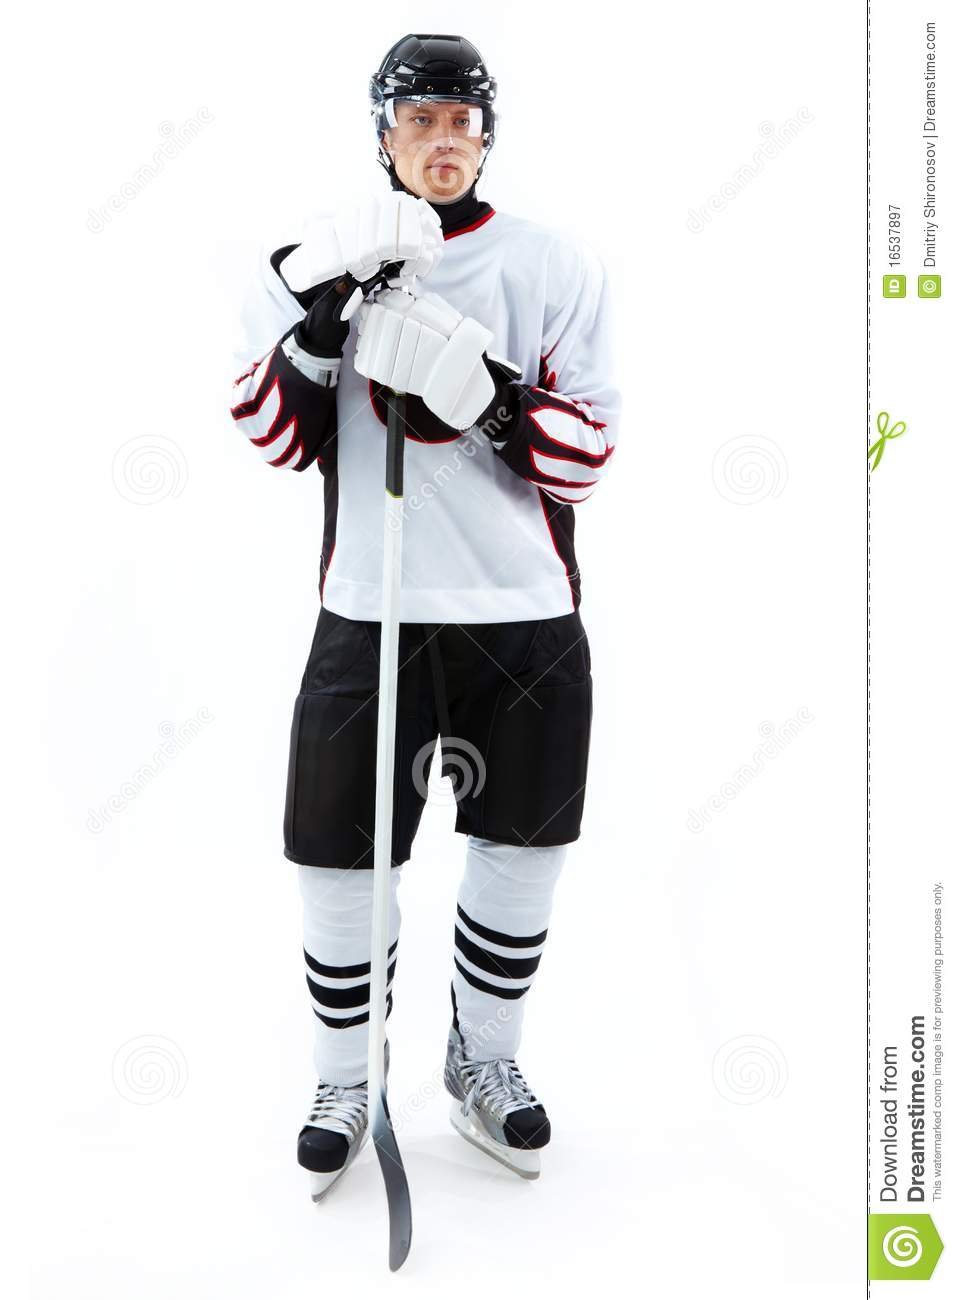 icehockey player royalty free stock photography image